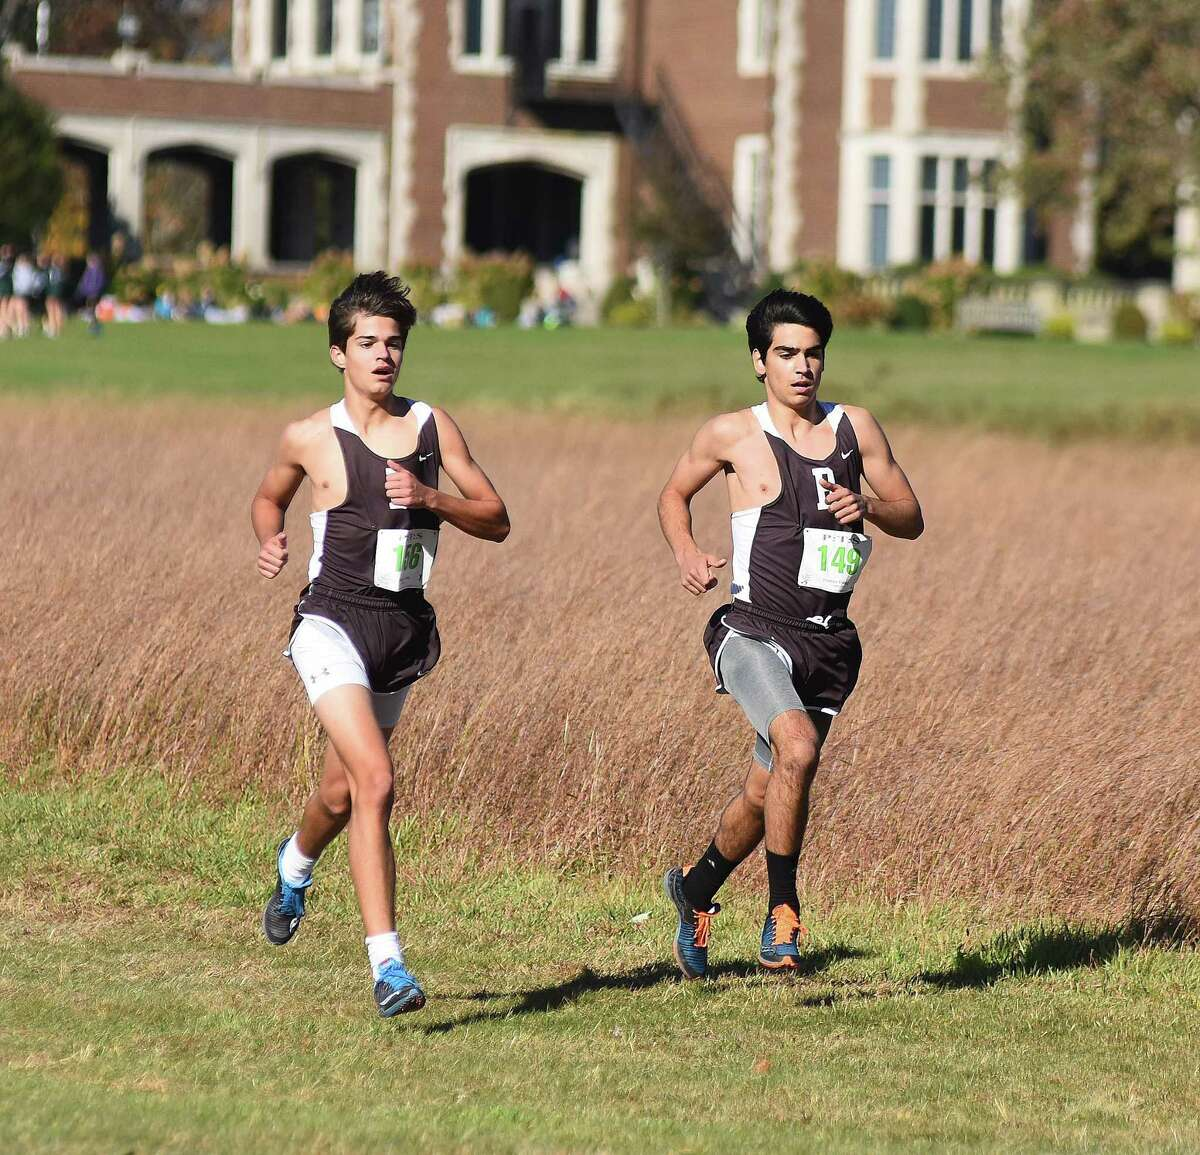 Brunswick runners Kyle Raker, left, and Andres Jasson race at Waveny Park in New Canaan on Tuesday during the FAA boys varsity cross country championship race. Jasson was among 3 Connecticut soccer players chosen to take part in NYCFC's preseason.